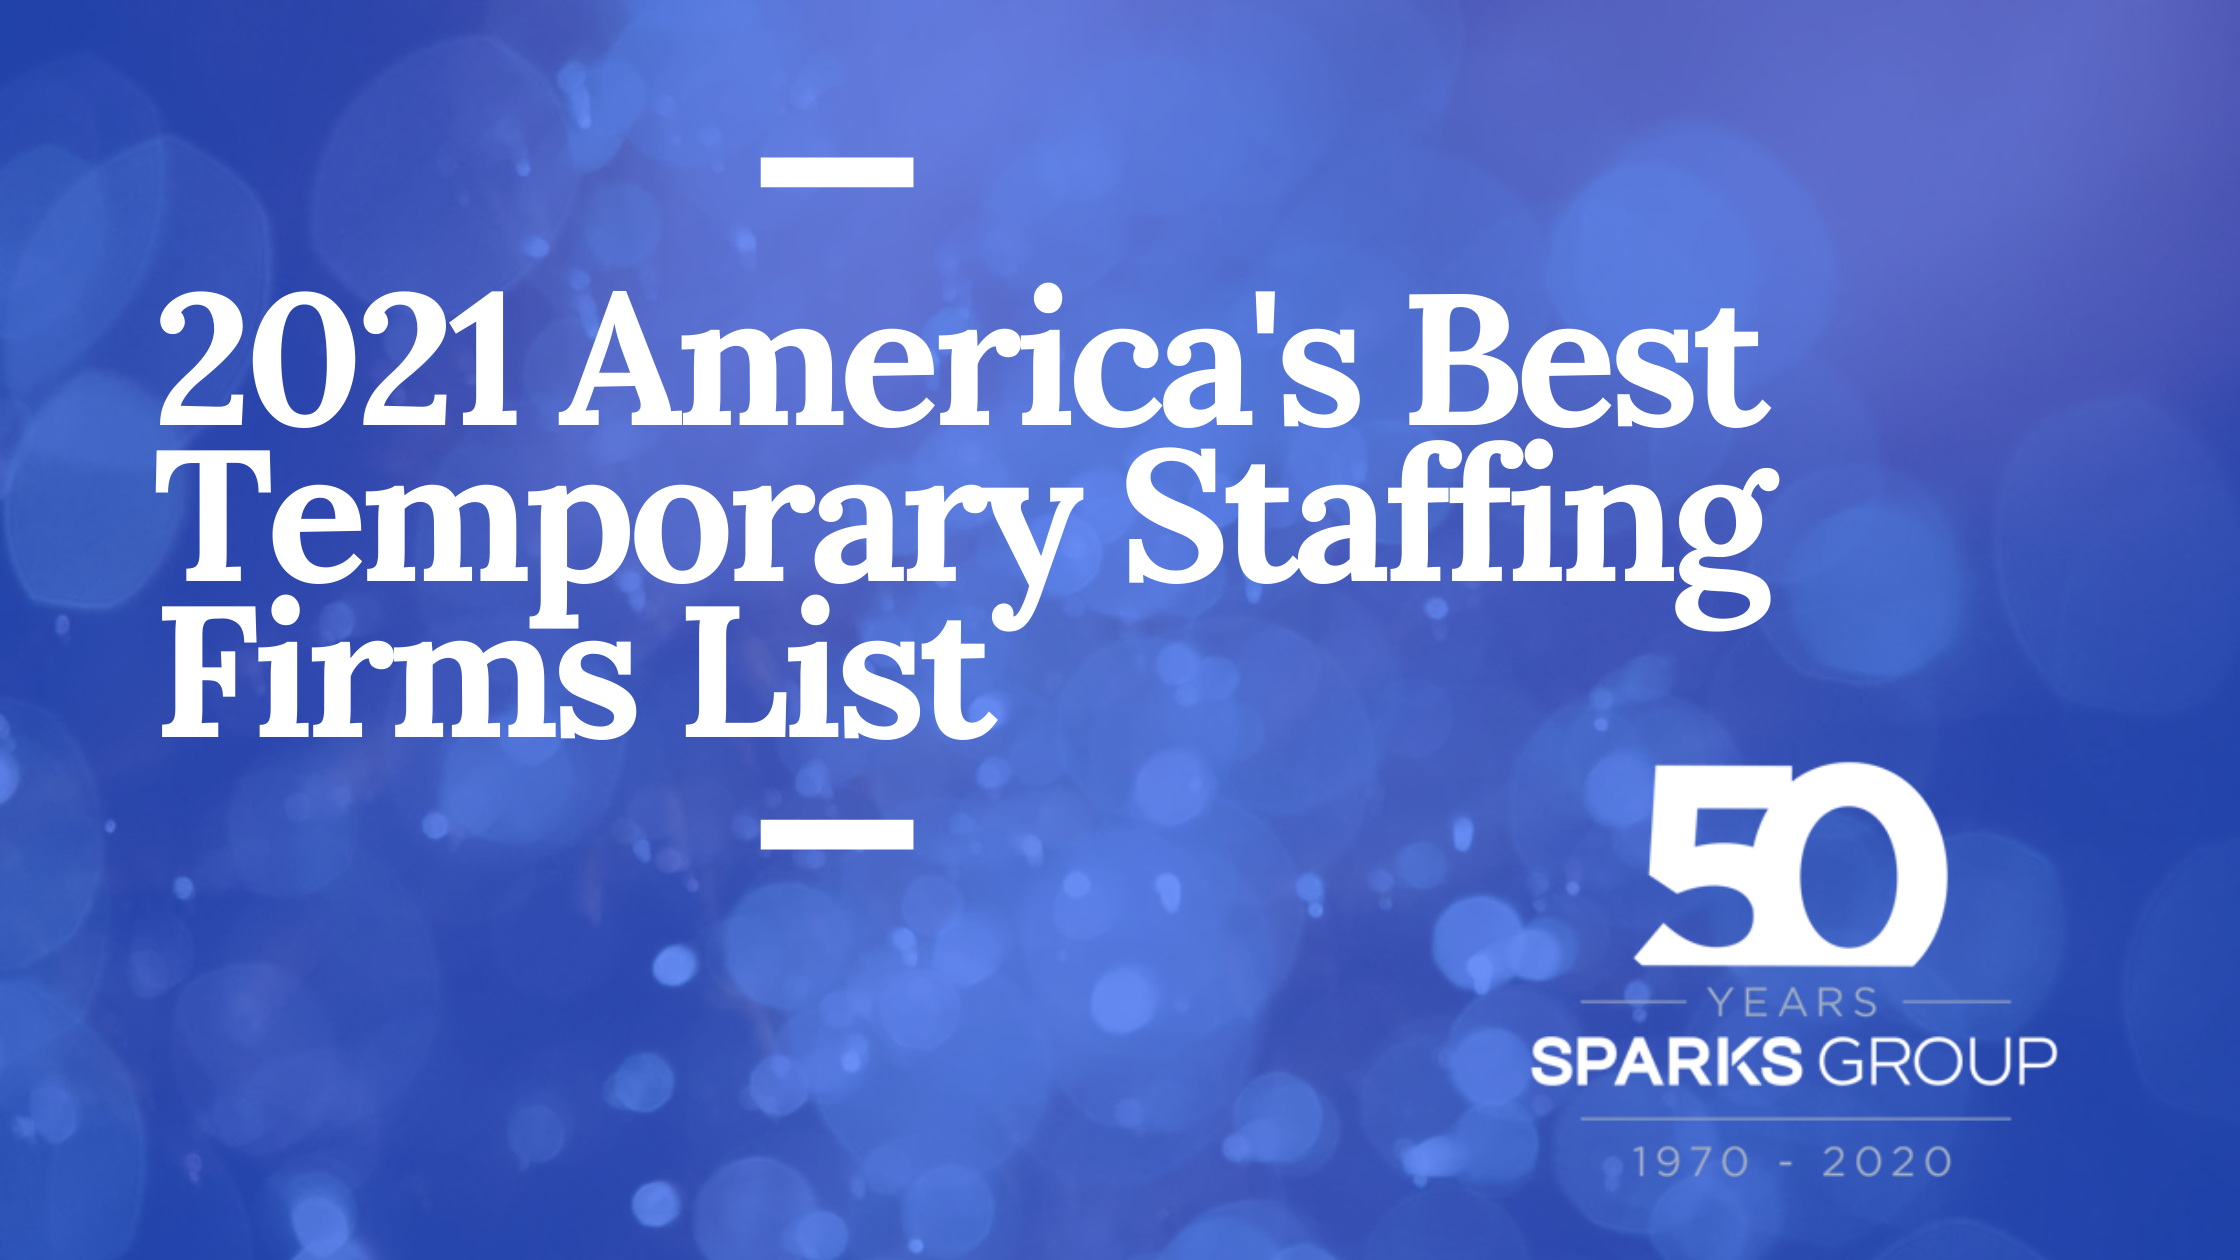 2021 Americas Best Temporary Staffing Firms List_Sparks Group